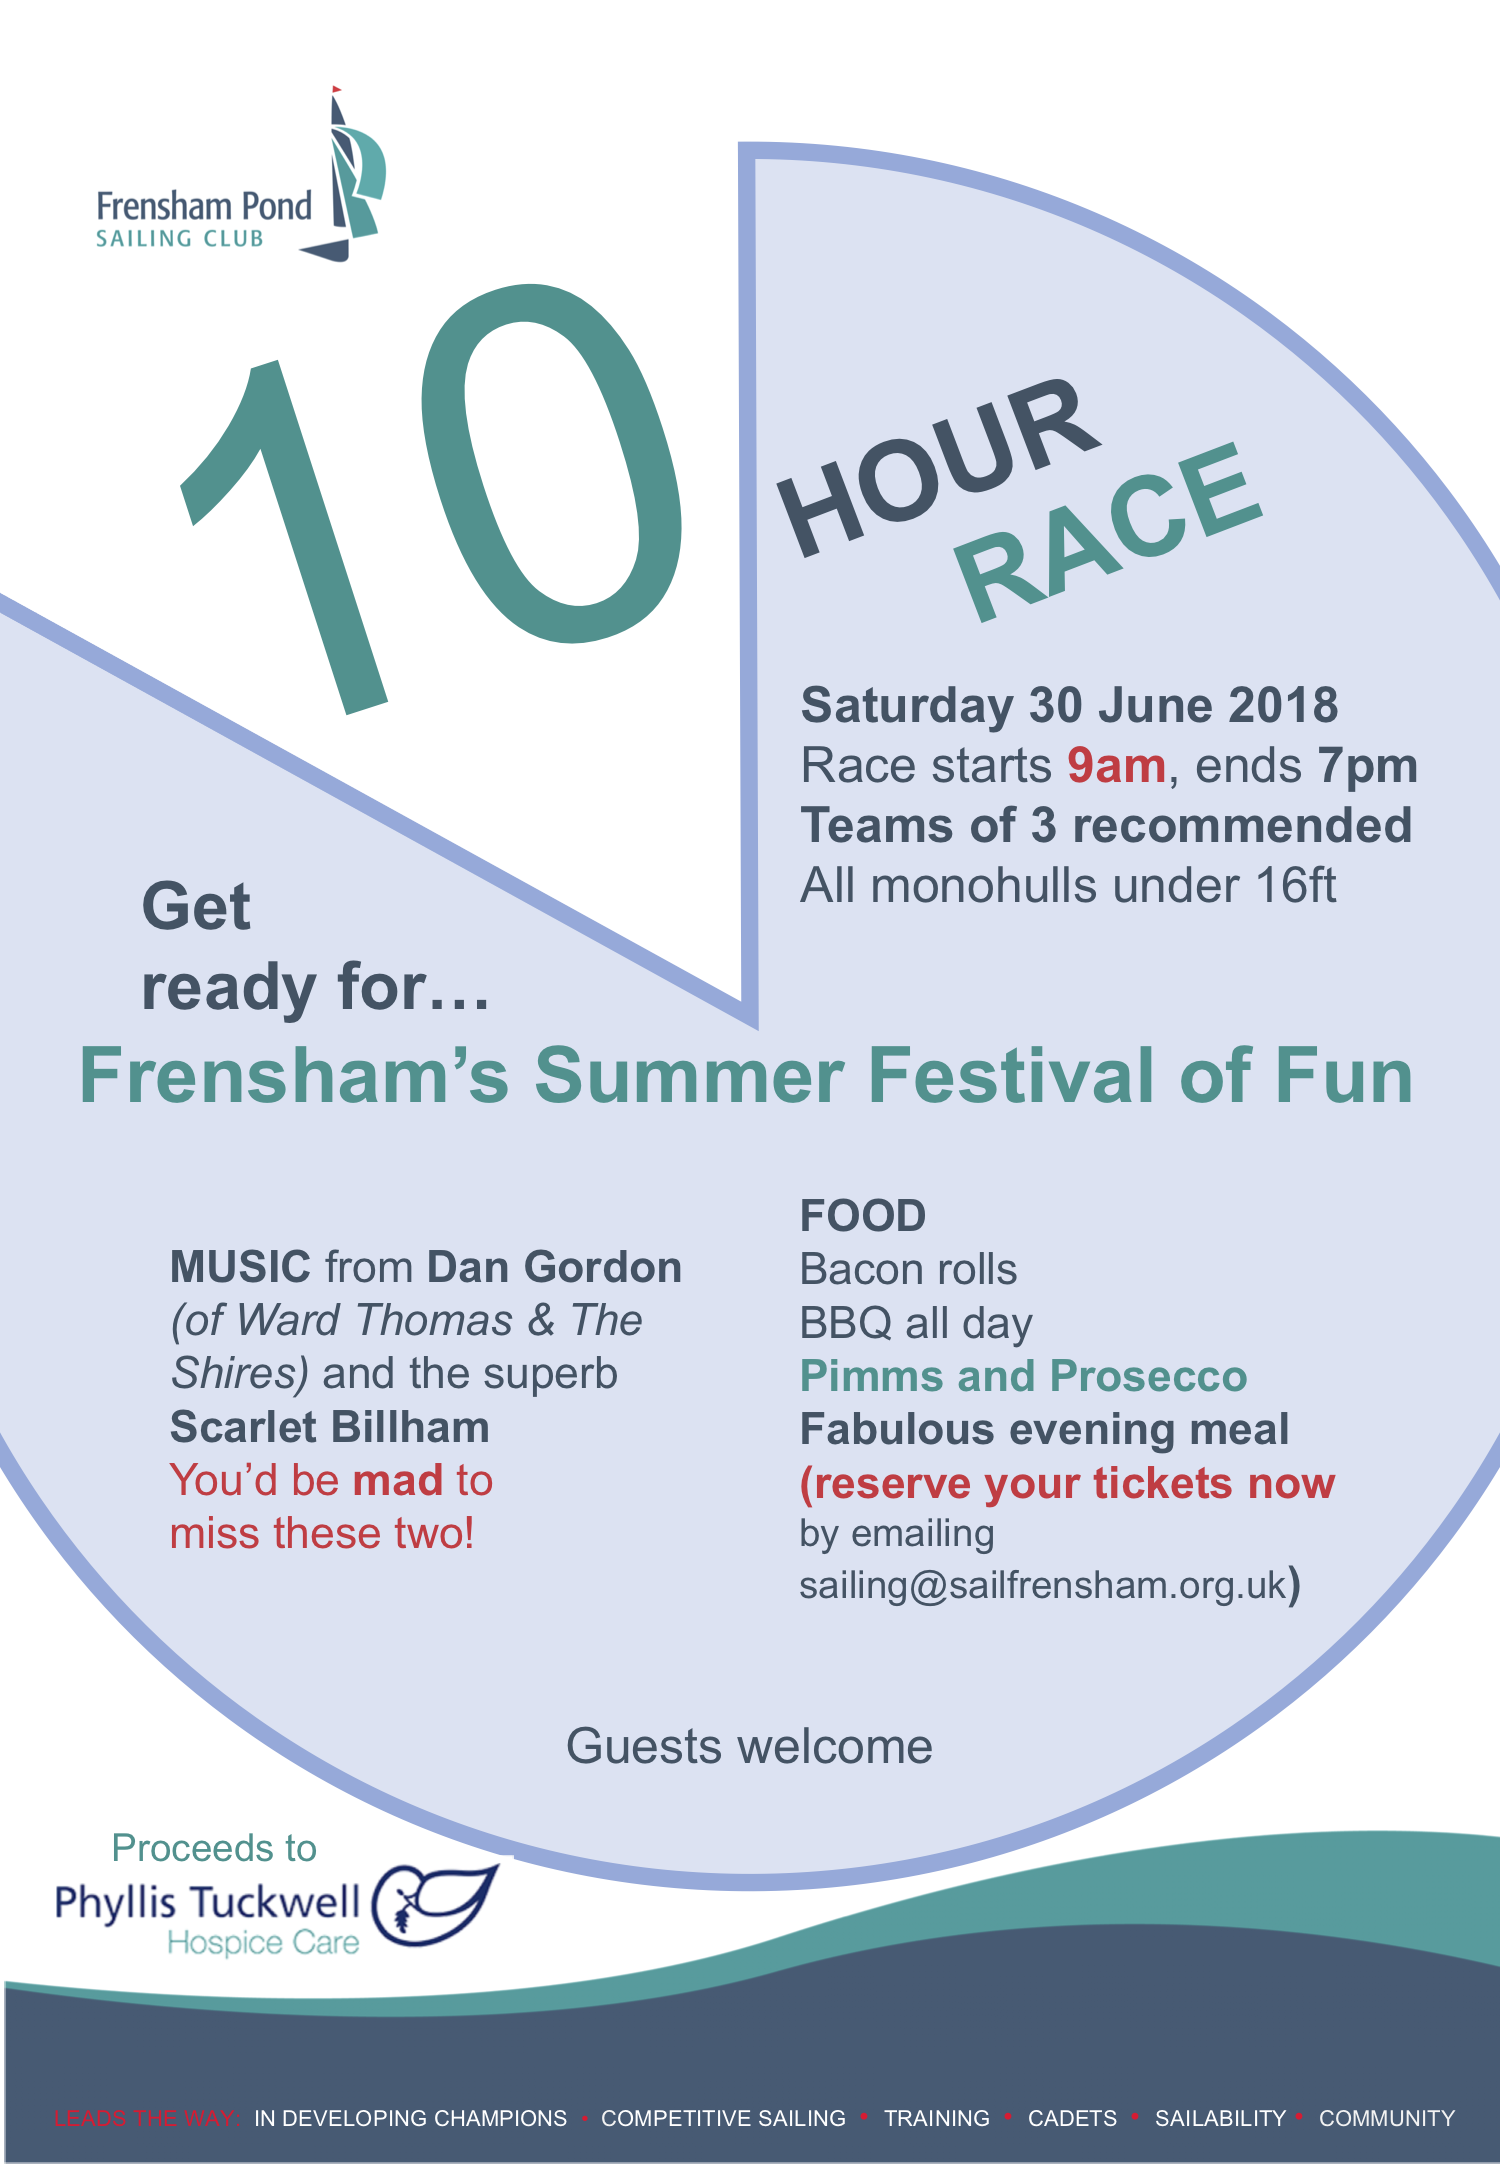 Poster for 10 Hour Race Sat 30 June 2018